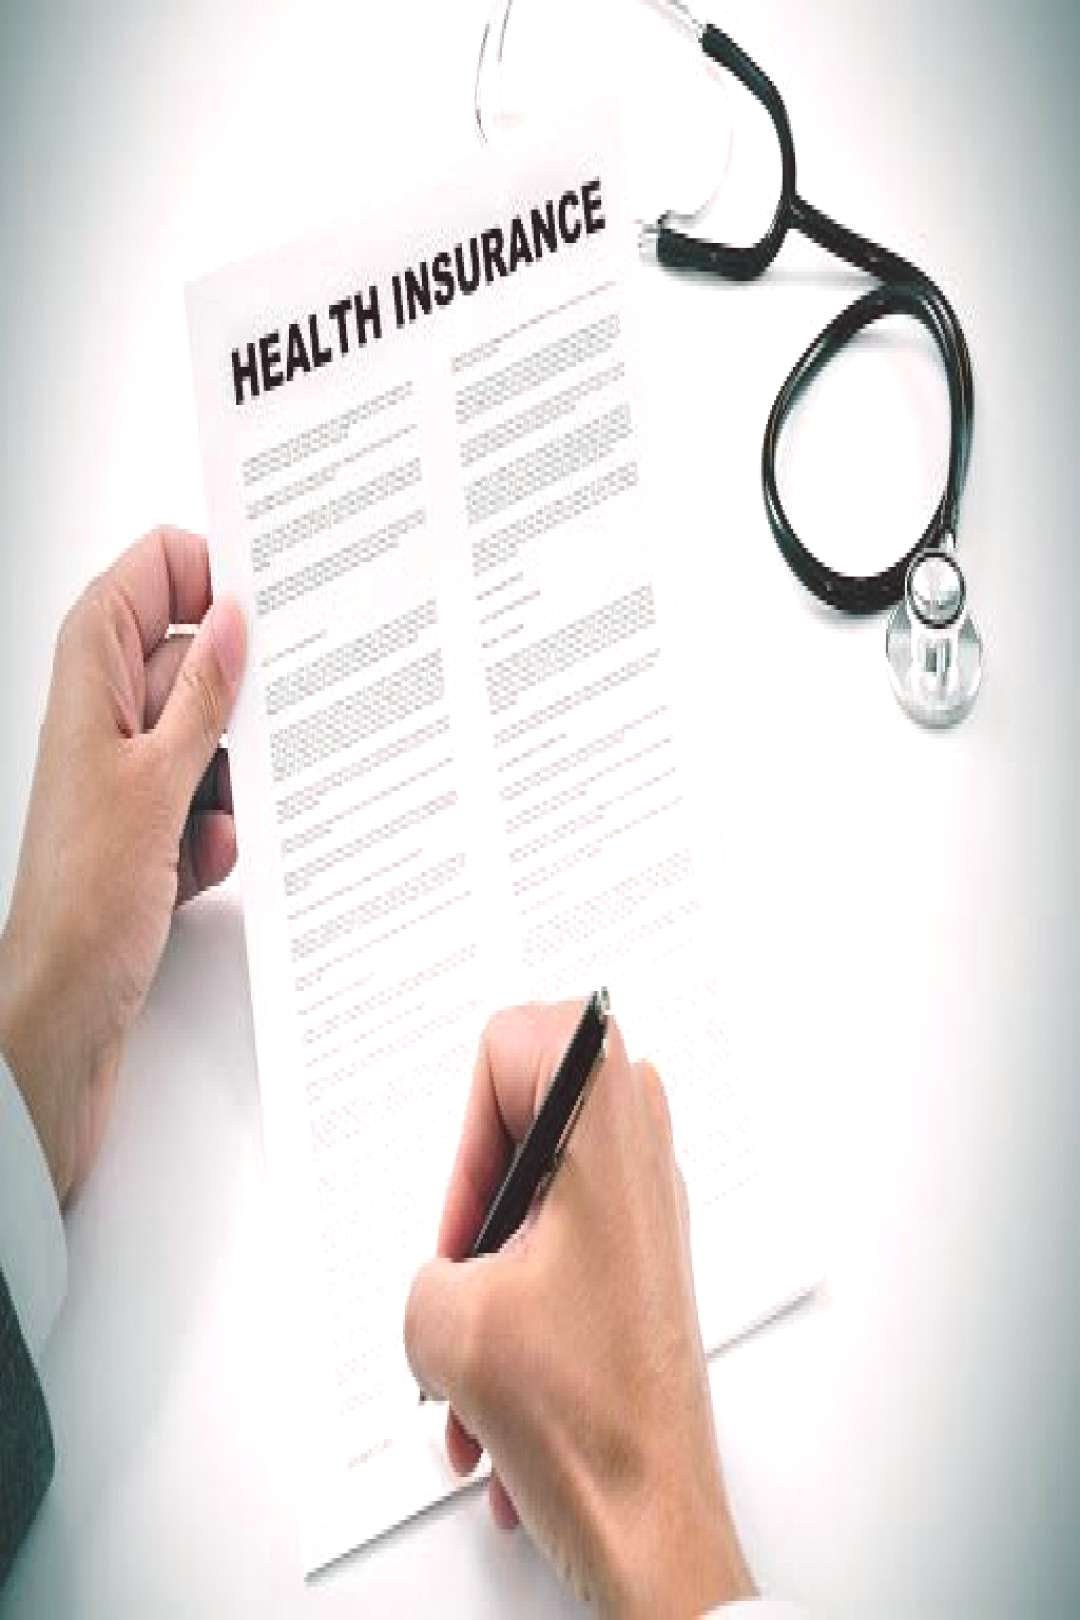 Top Medical Cost Sharing Insurance